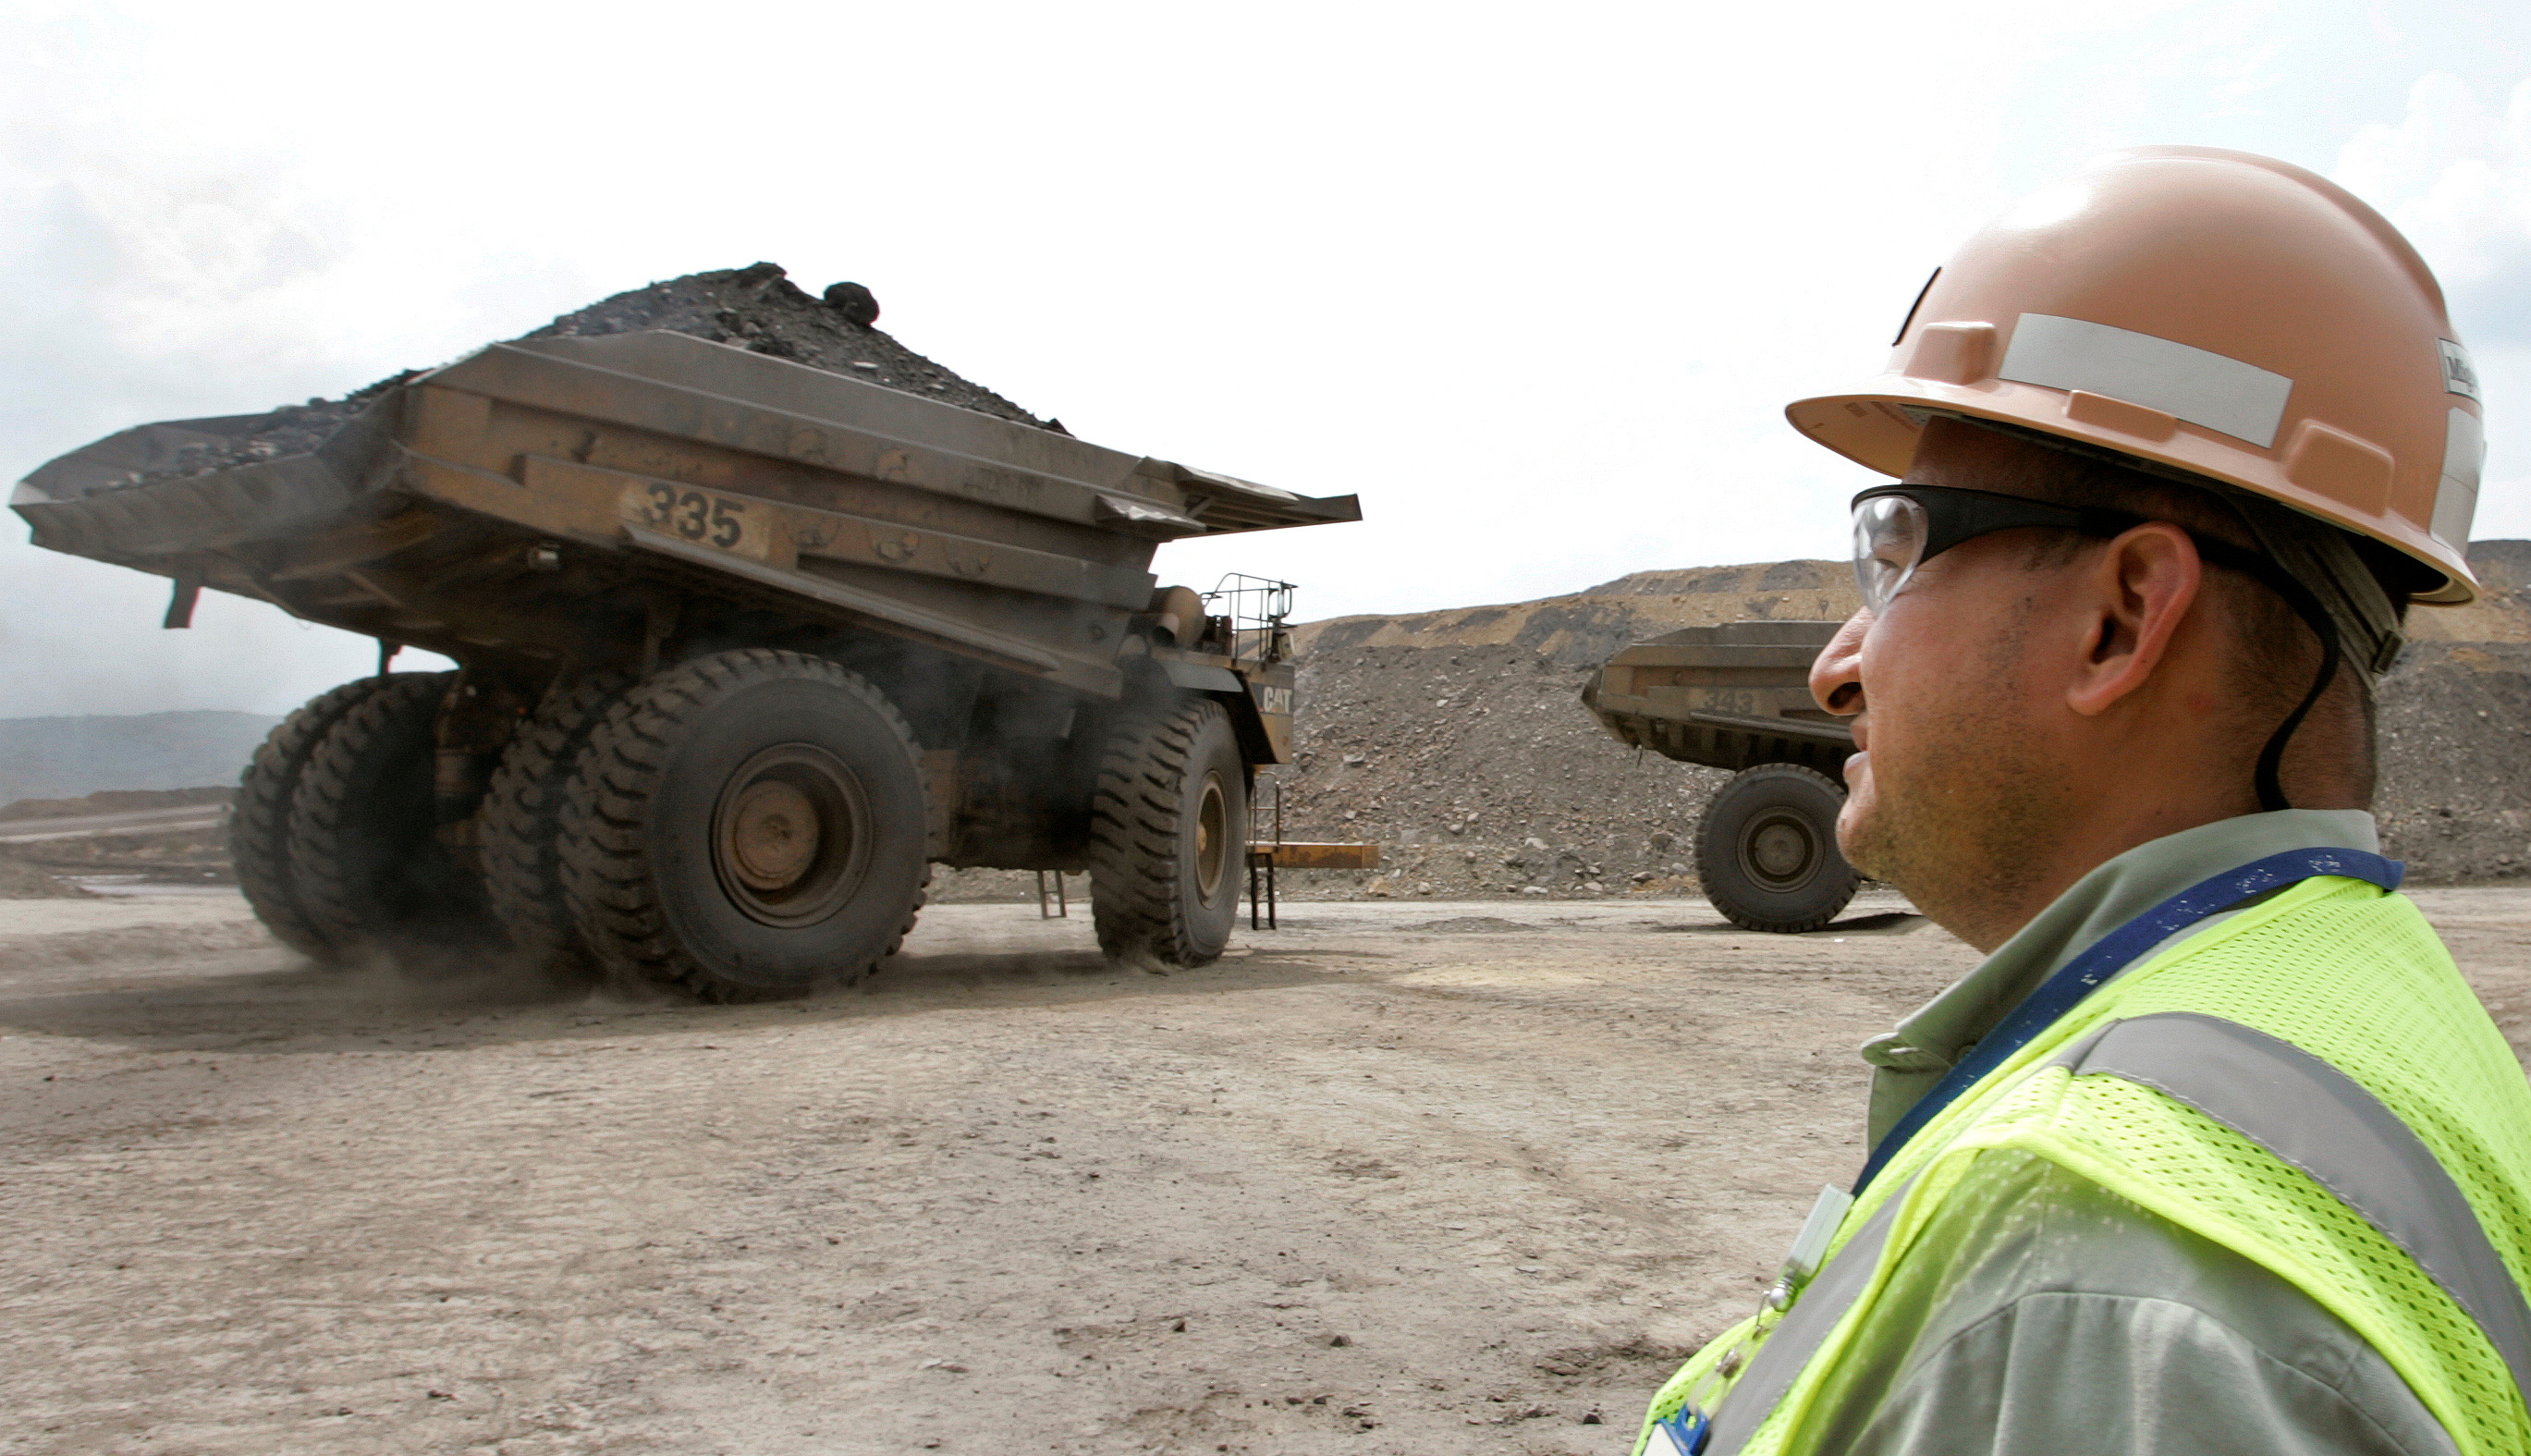 A Colombian worker looks as a mining truck drives away at the Cerrejon coal mine near Barrancas, Guajira province, May 24, 2007. Picture taken on May 24, 2007  REUTERS/Jose Miguel Gomez/File Photo